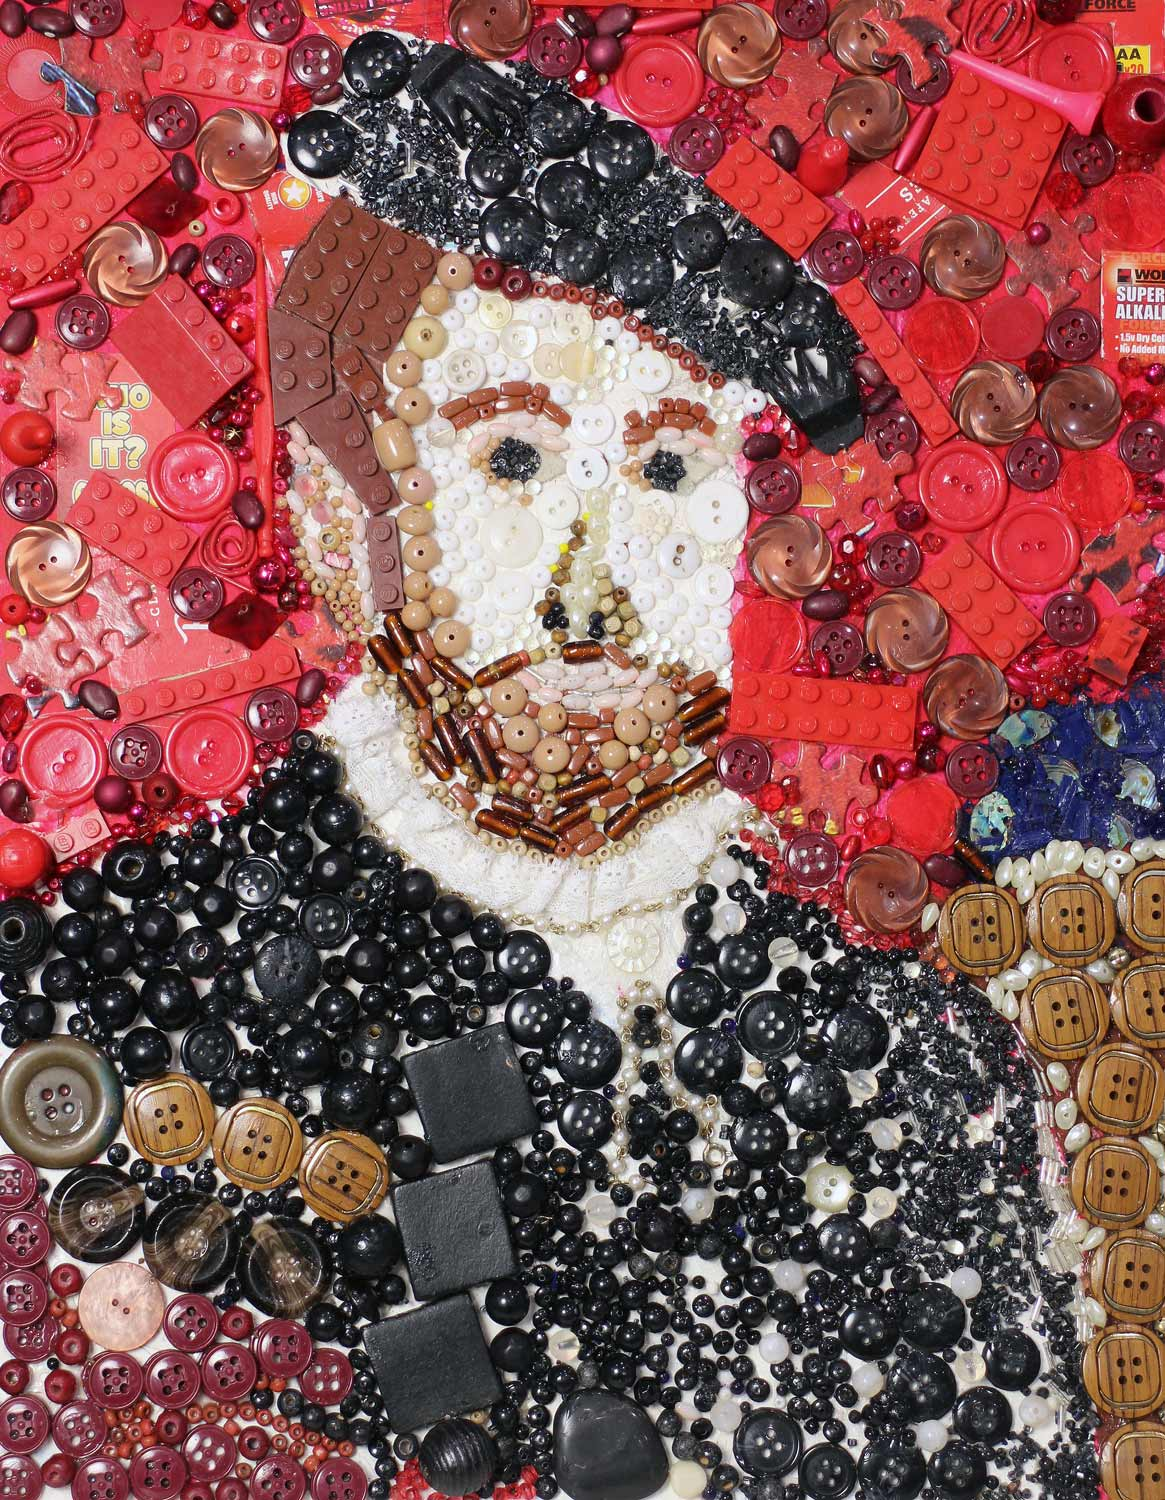 Student artwork of a collage of a man in buttons